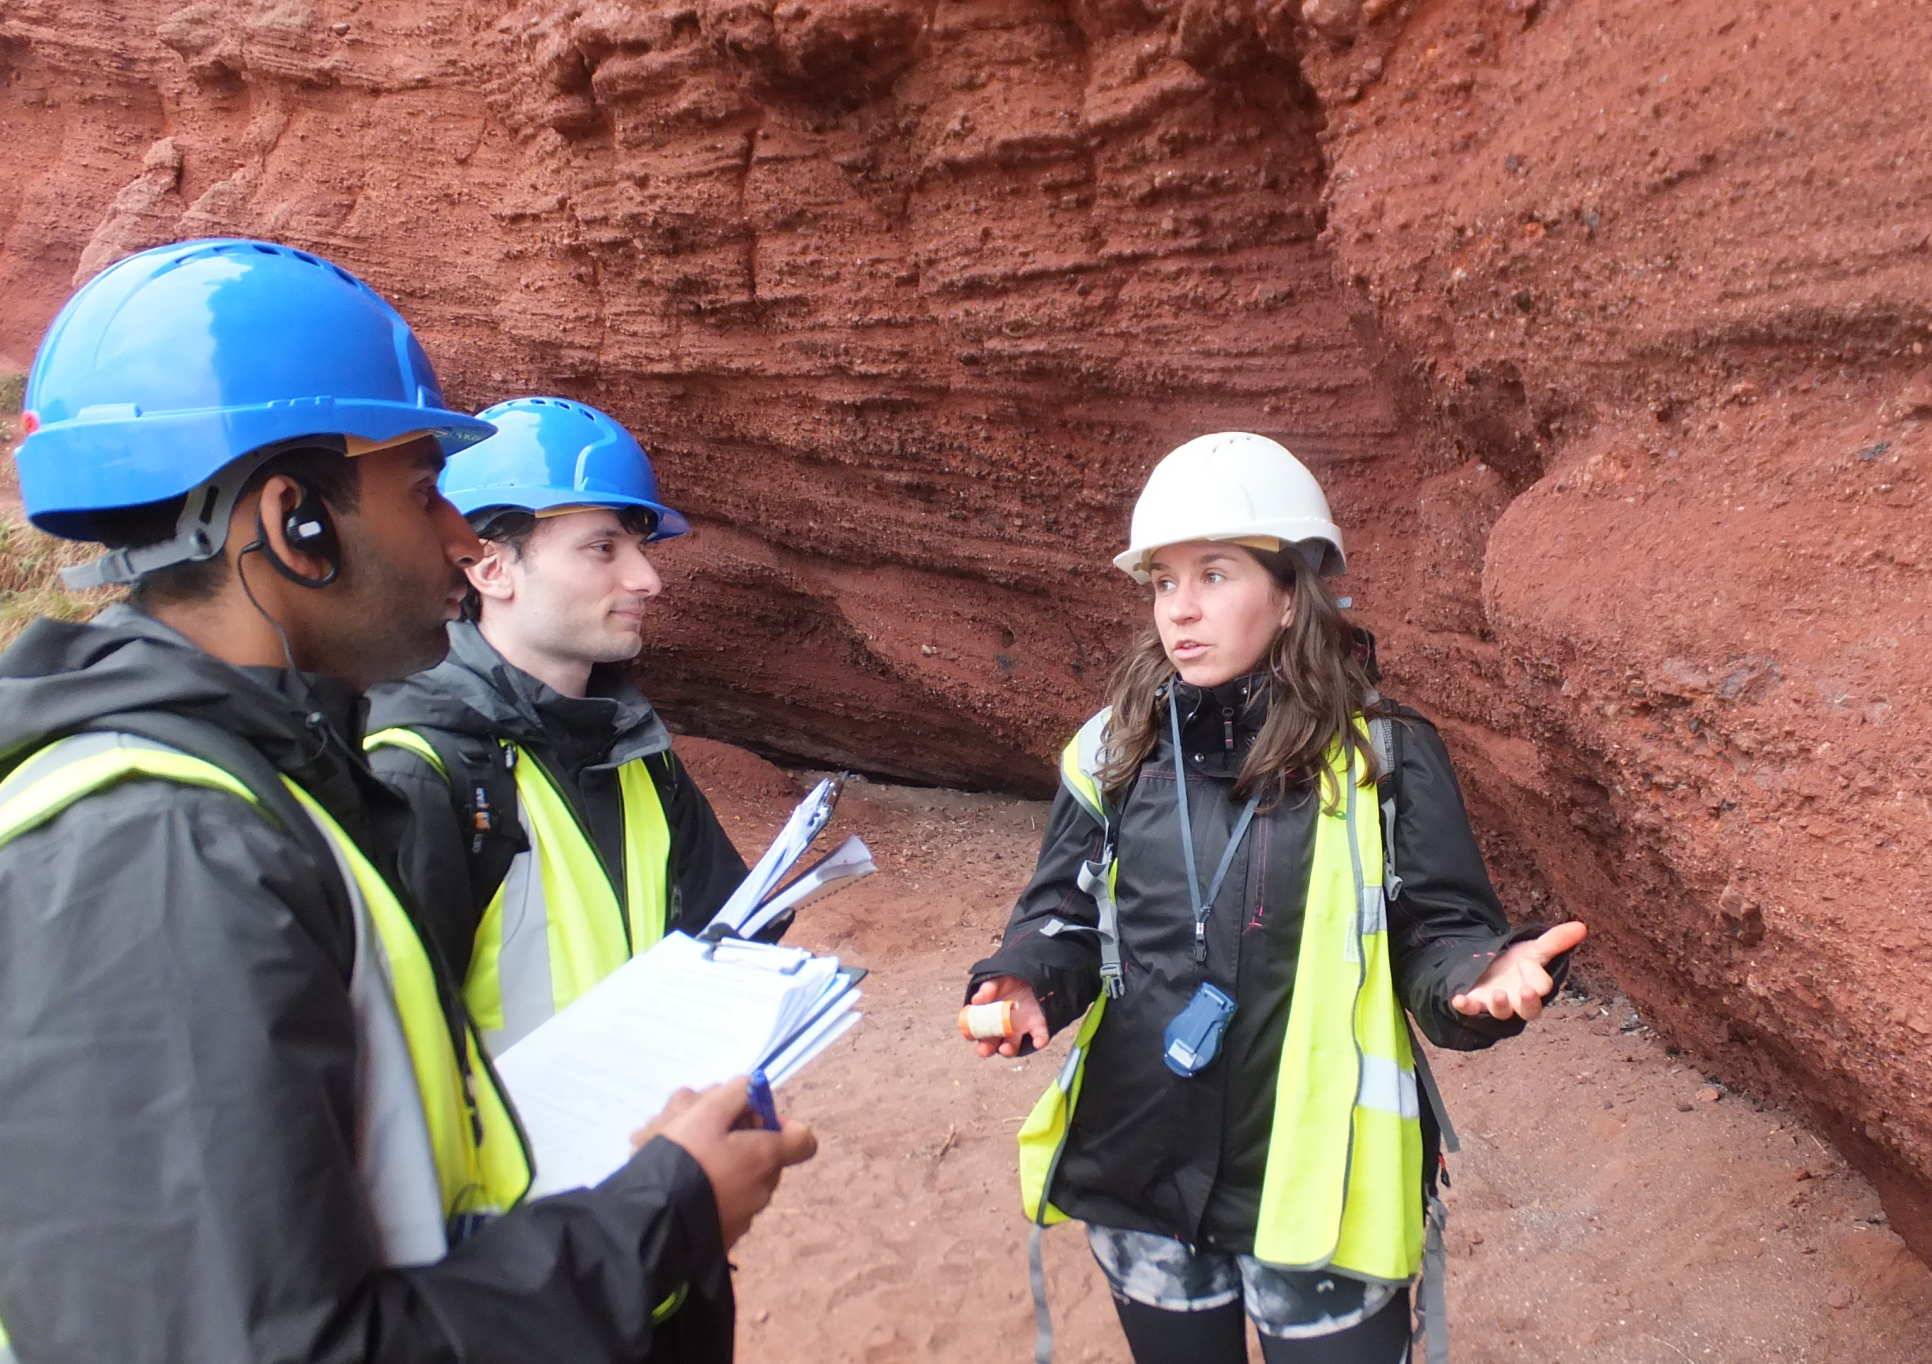 MSc Petroleum Engineering students stand on the beach by a red cliff and discuss its geological features